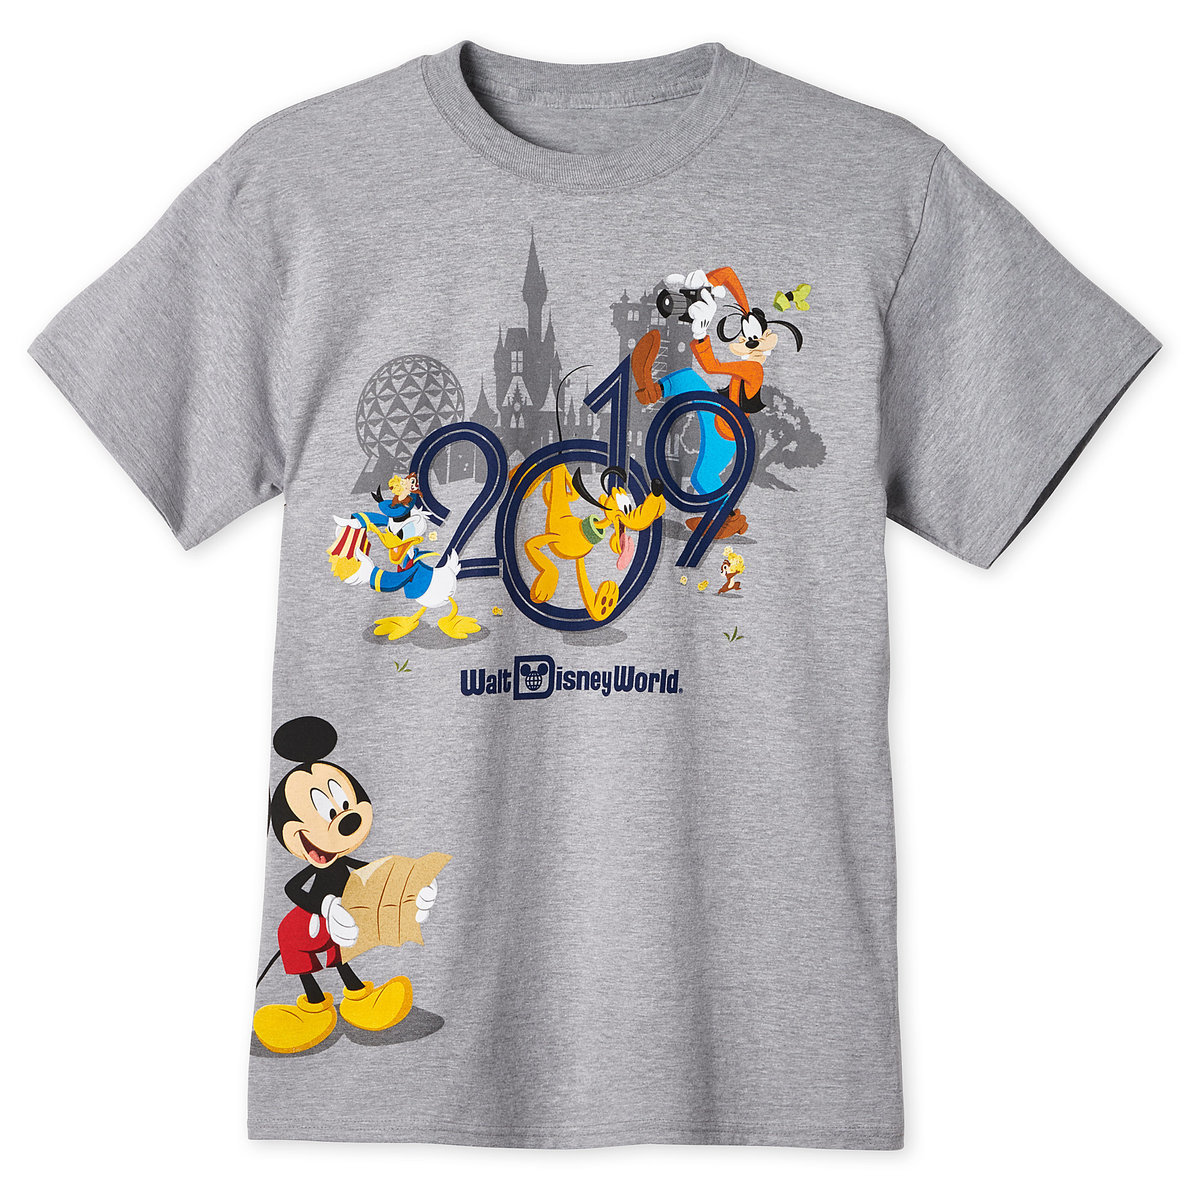 daa4bf02 Product Image of Mickey Mouse and Friends T-Shirt for Adults - Walt Disney  World